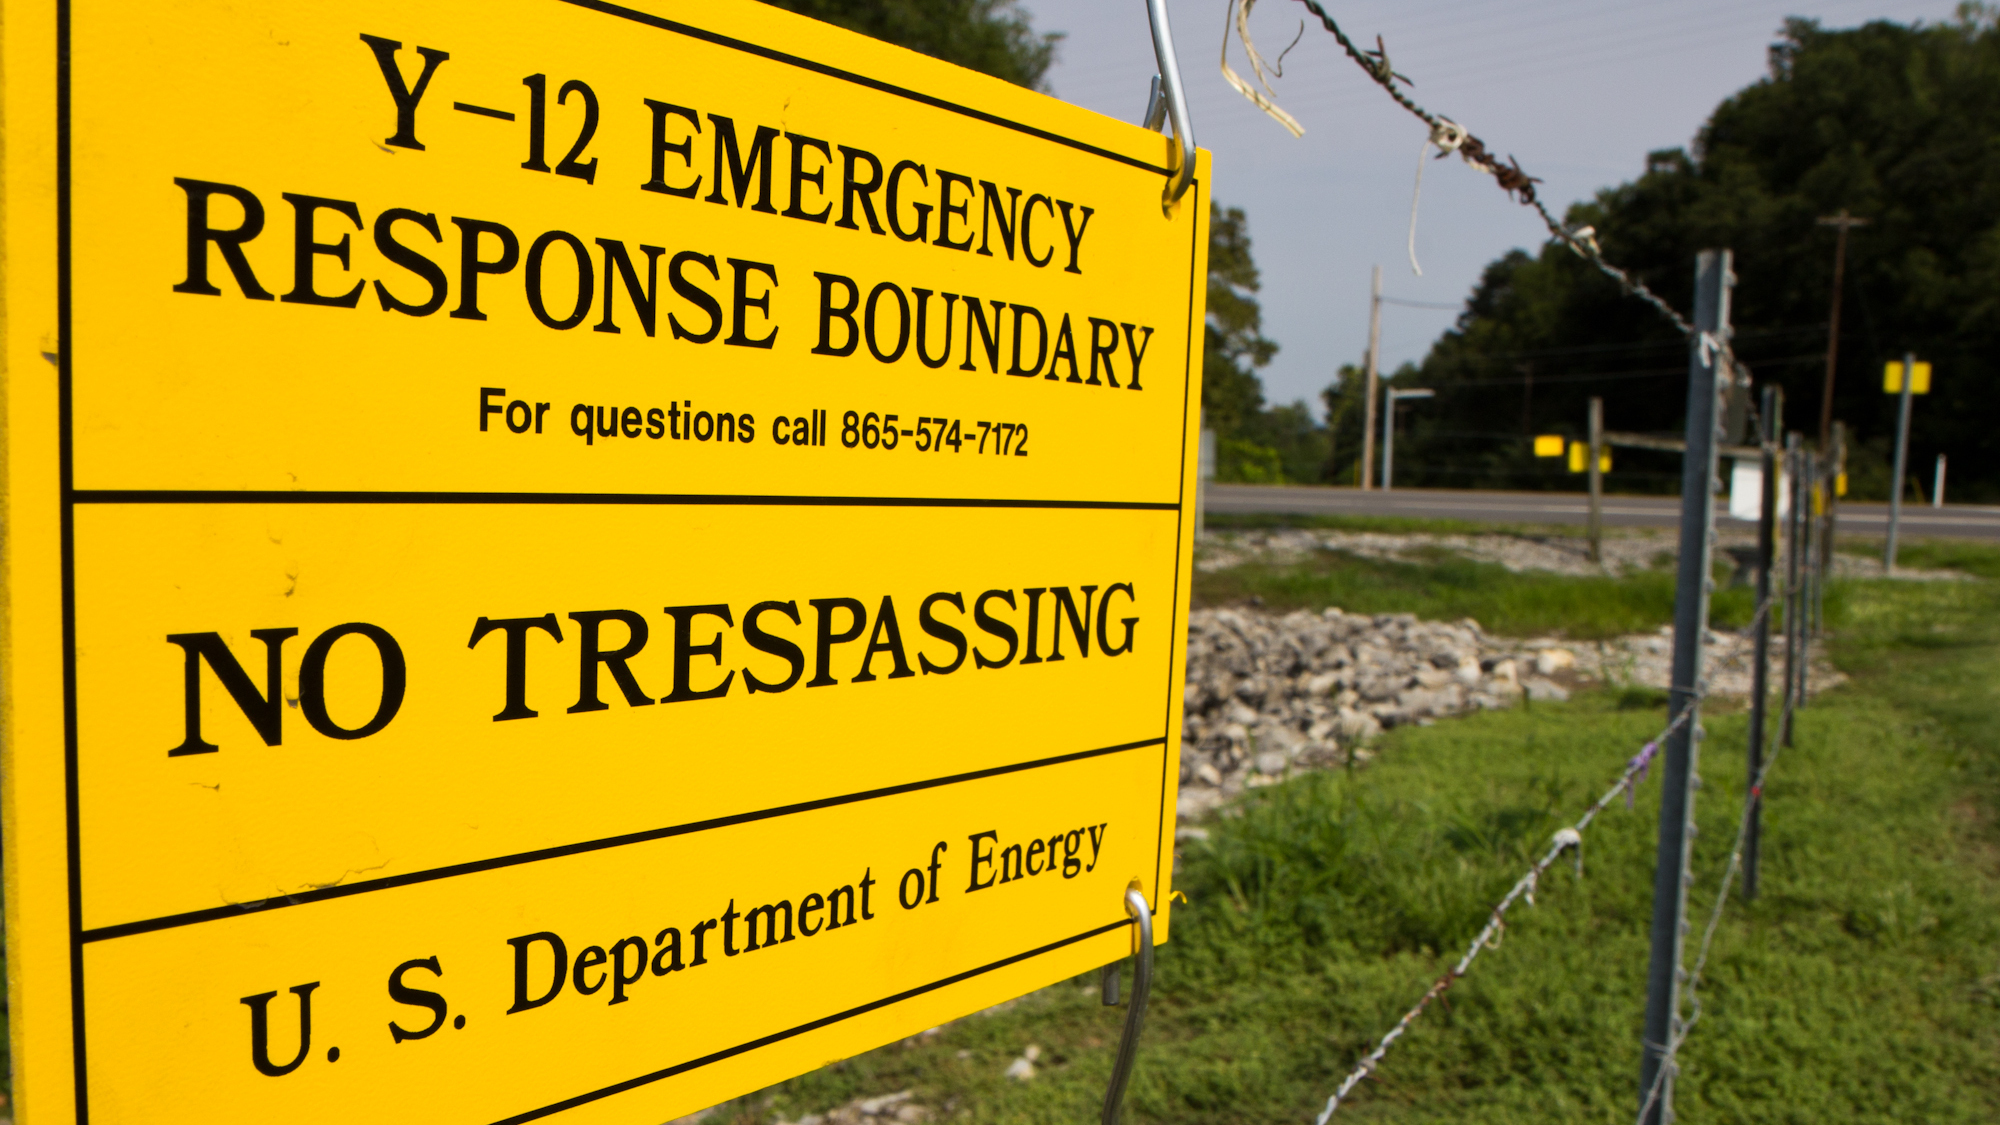 A sign warns against trespassing onto the Y-12 National Security Complex in Oak Ridge, Tenn. Sister Megan Rice and two other anti-war protesters cut through three fences and spray-painted slogans on the wall of a weapons-grade uranium facility in 2012.